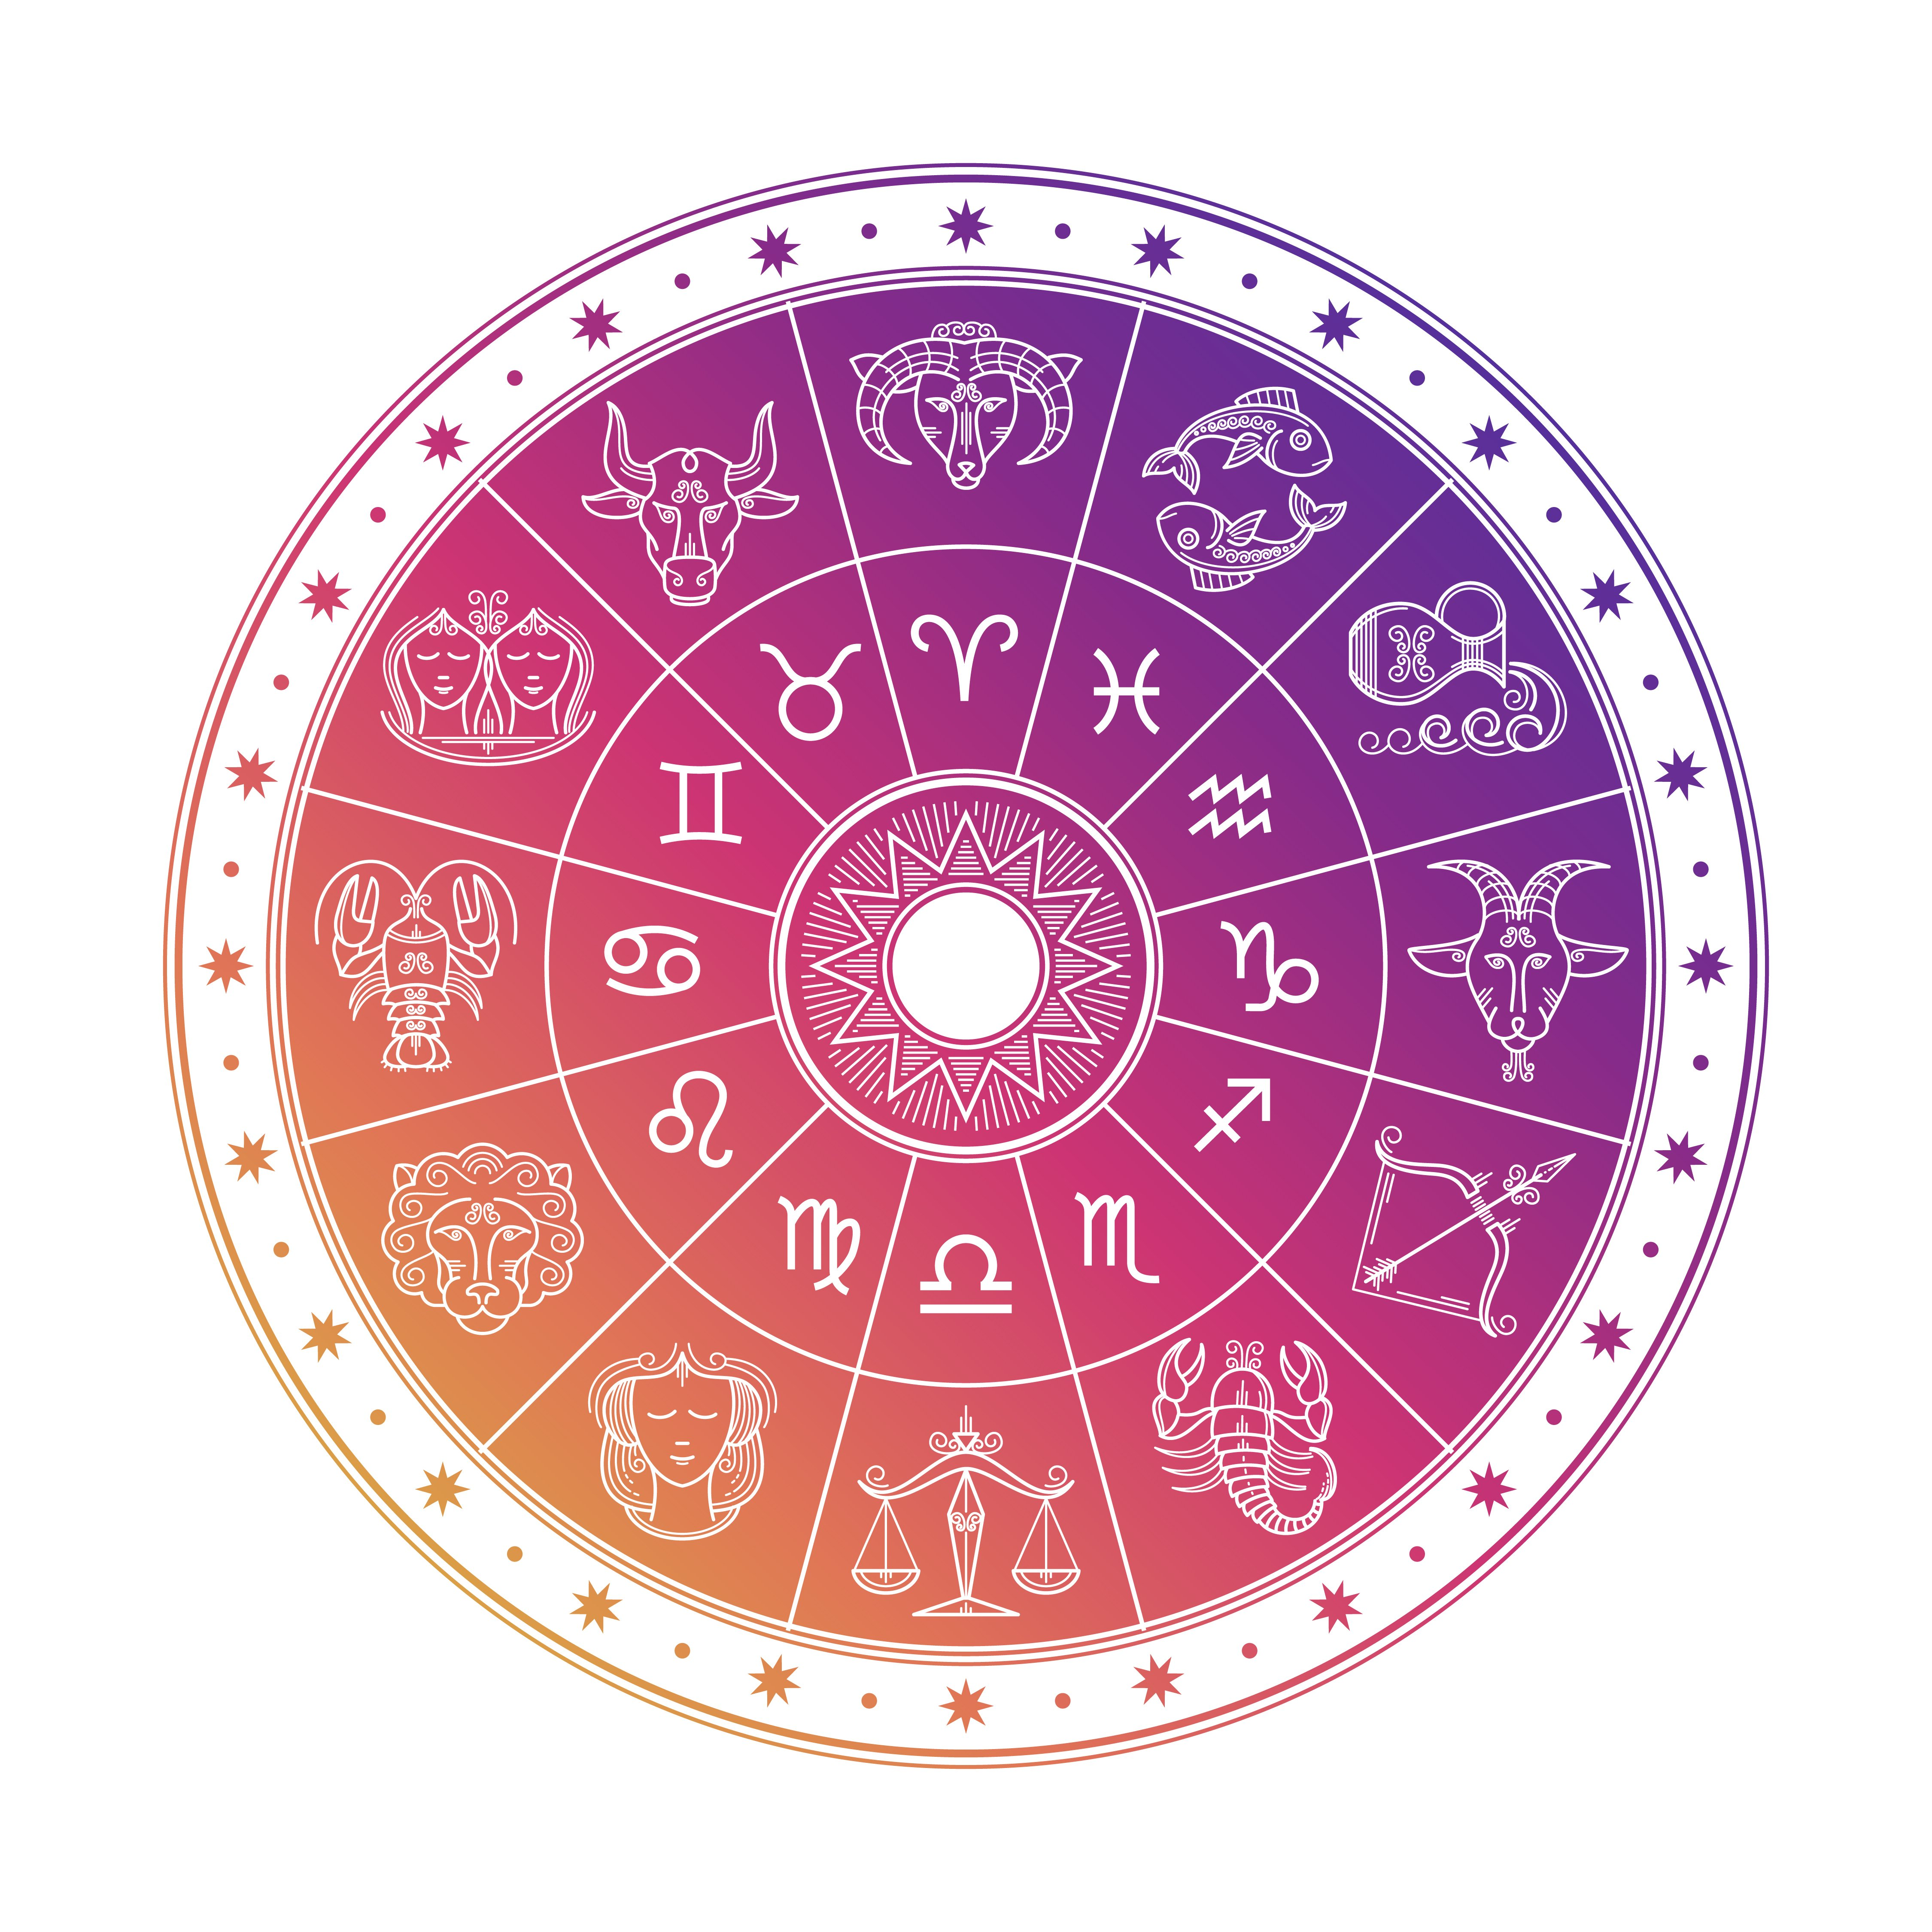 Colorful astrology circle design with horoscope signs isolated on white background   Photo: Shutterstock